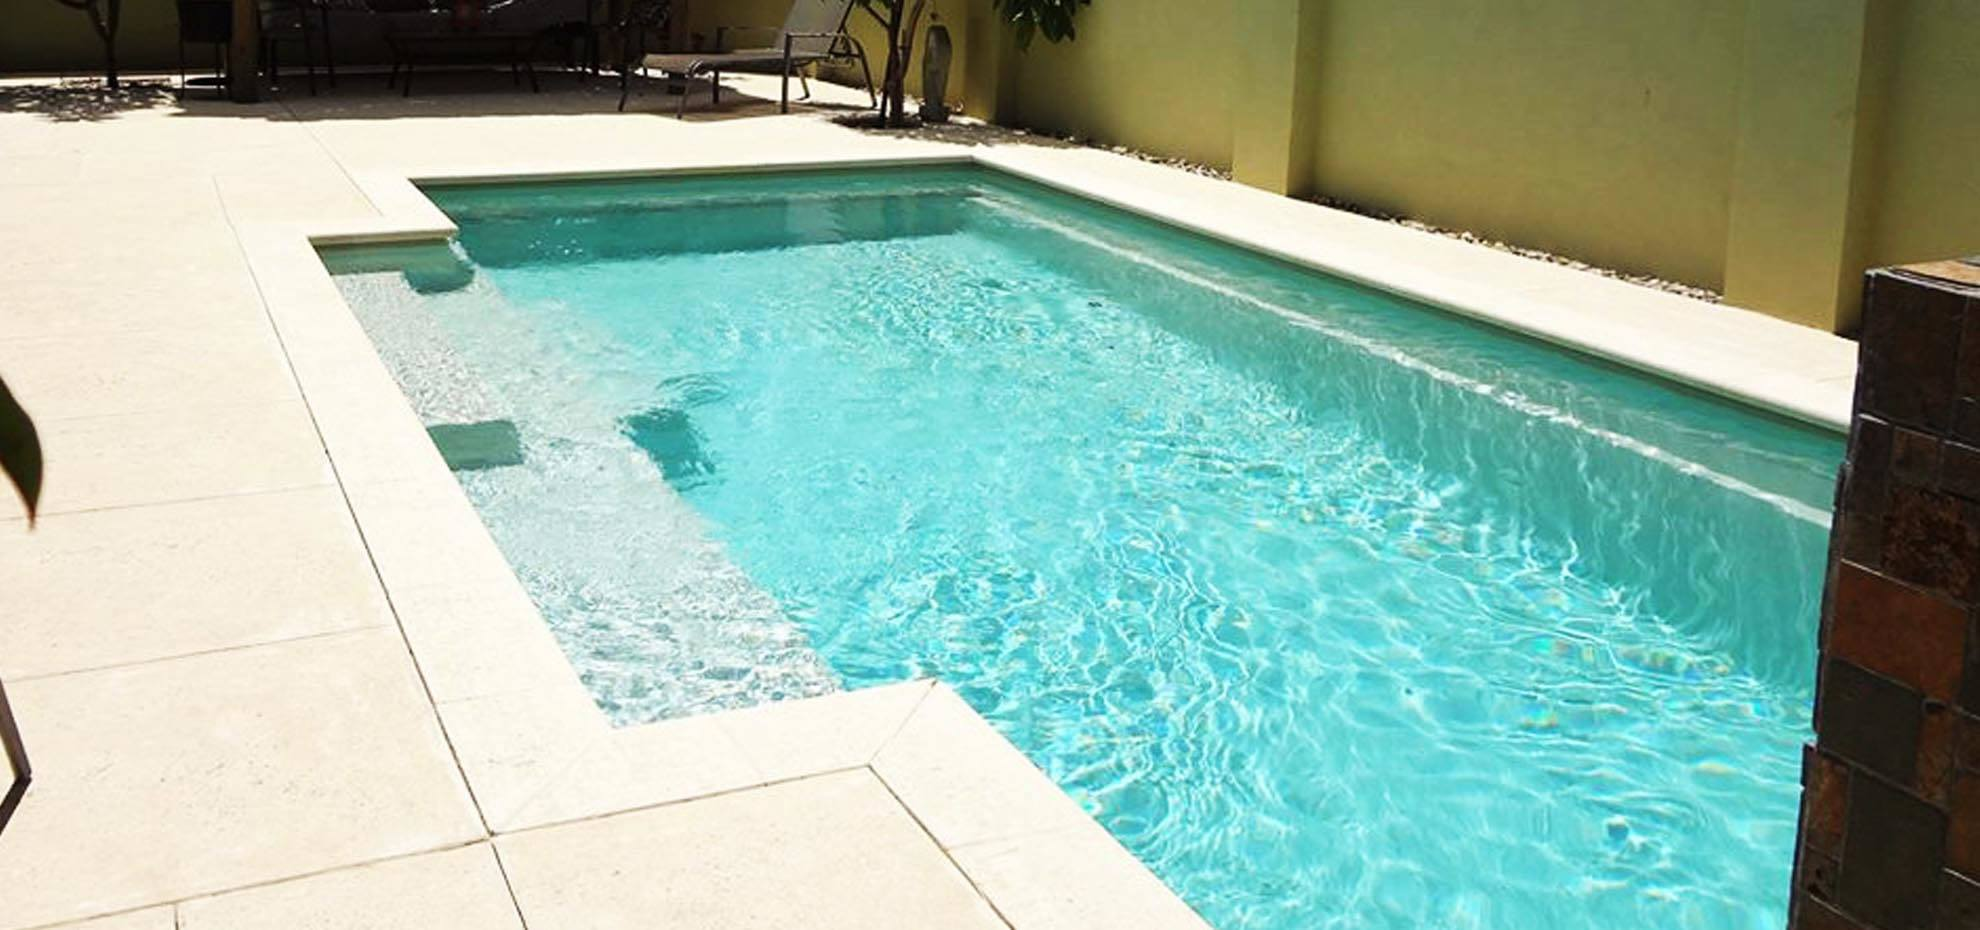 Elegance style fibreglass pool with coping by Leisure Pools